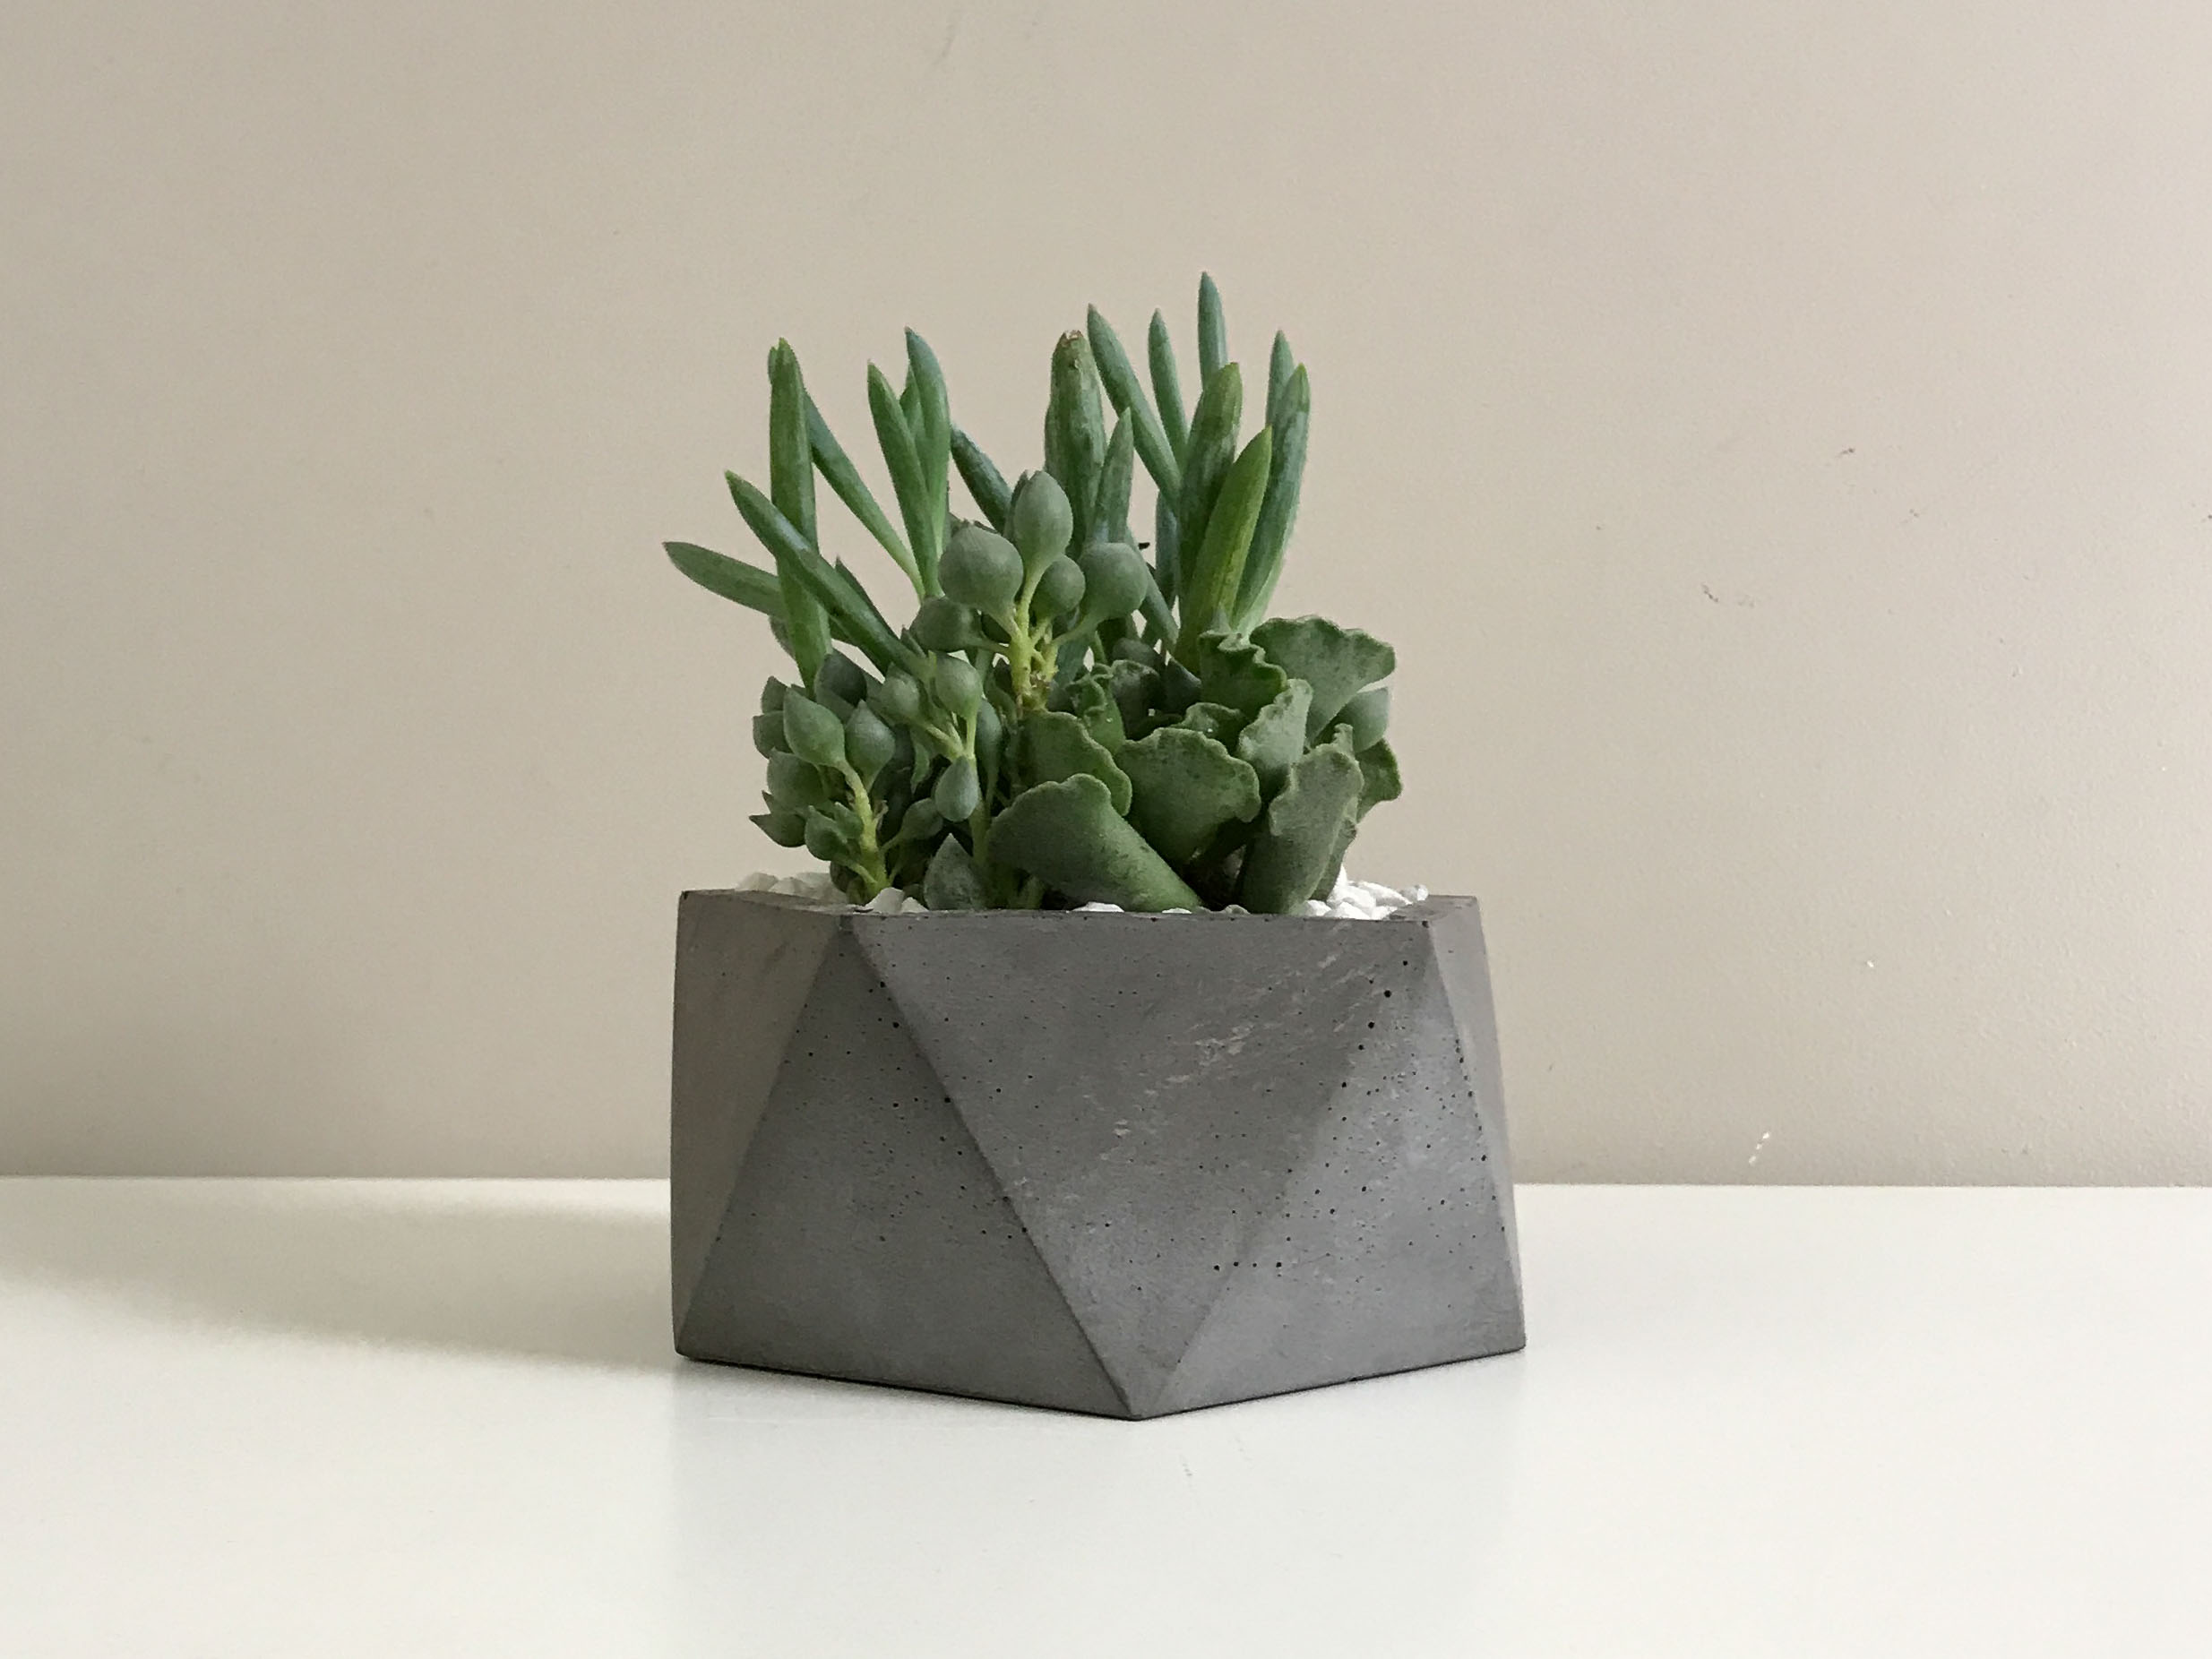 Copy of Dark Gray Charcoal Concrete Succulent Planter Pot by The Savvy Heart